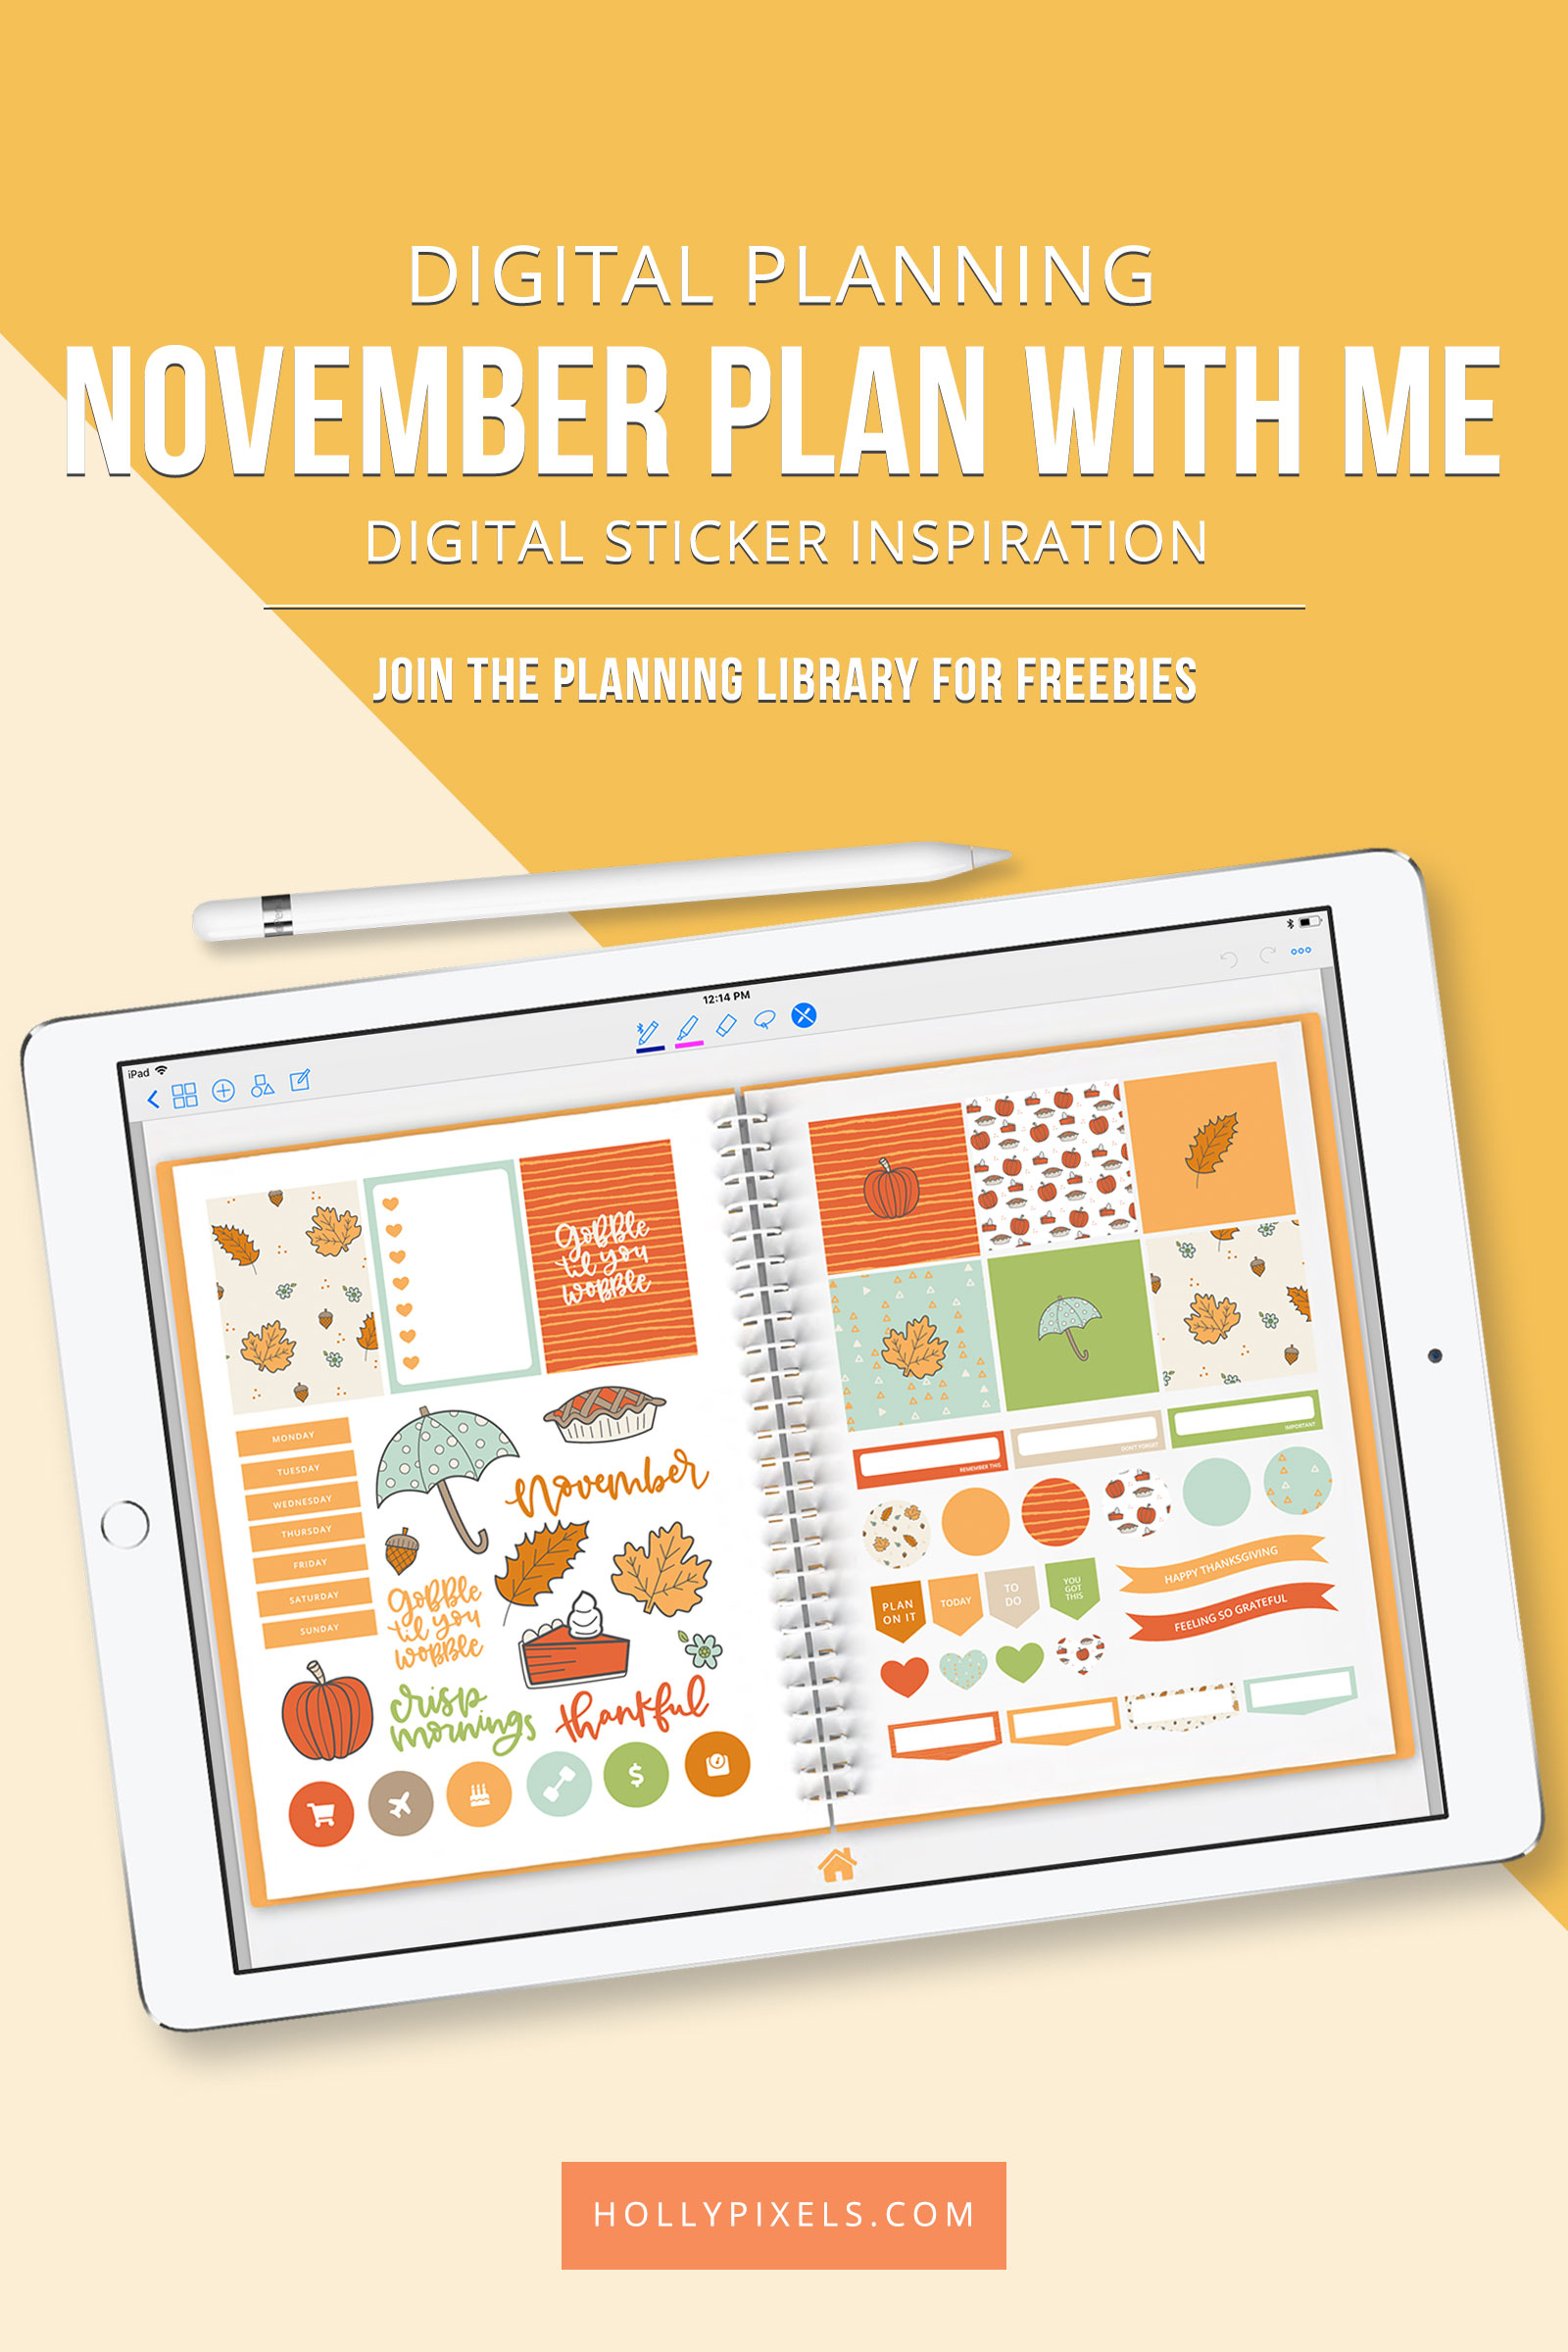 november-plan-with-me-stickers-for-digital-planning-pinterest